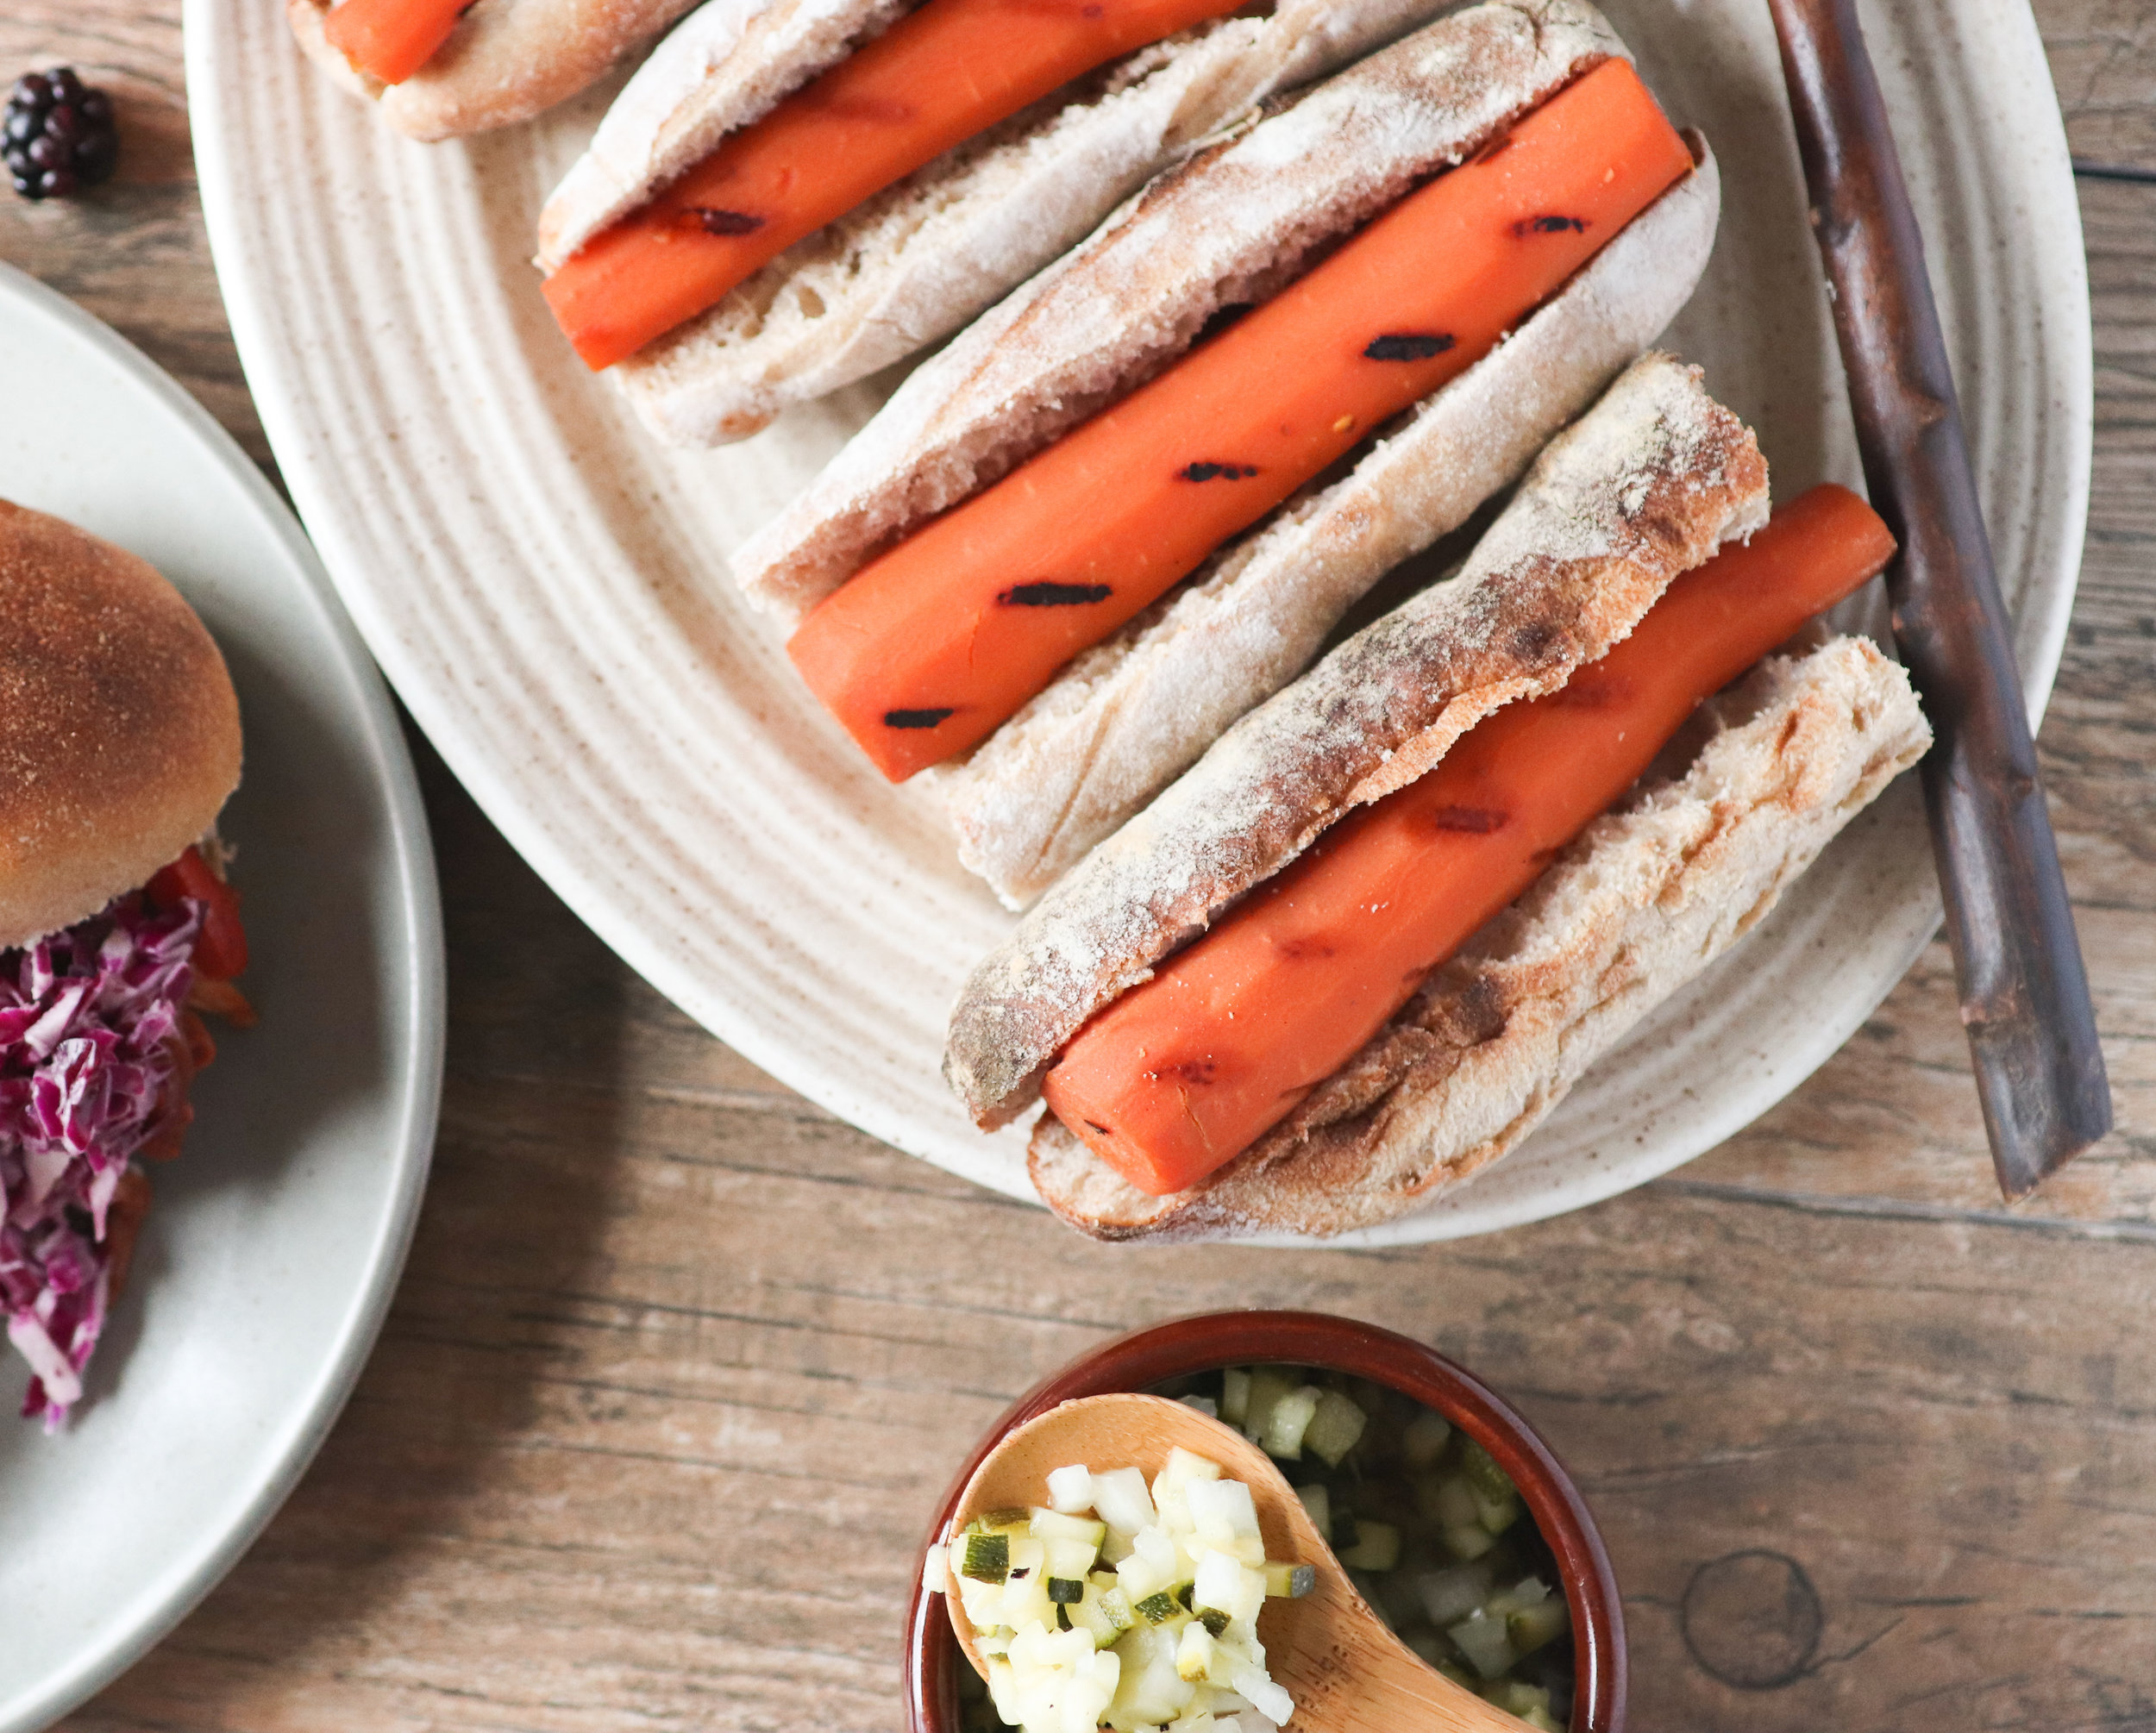 carrot dogs, zucchini relish, vegan, plant based, cookout, ebook, summer, barbeque, grill.jpg